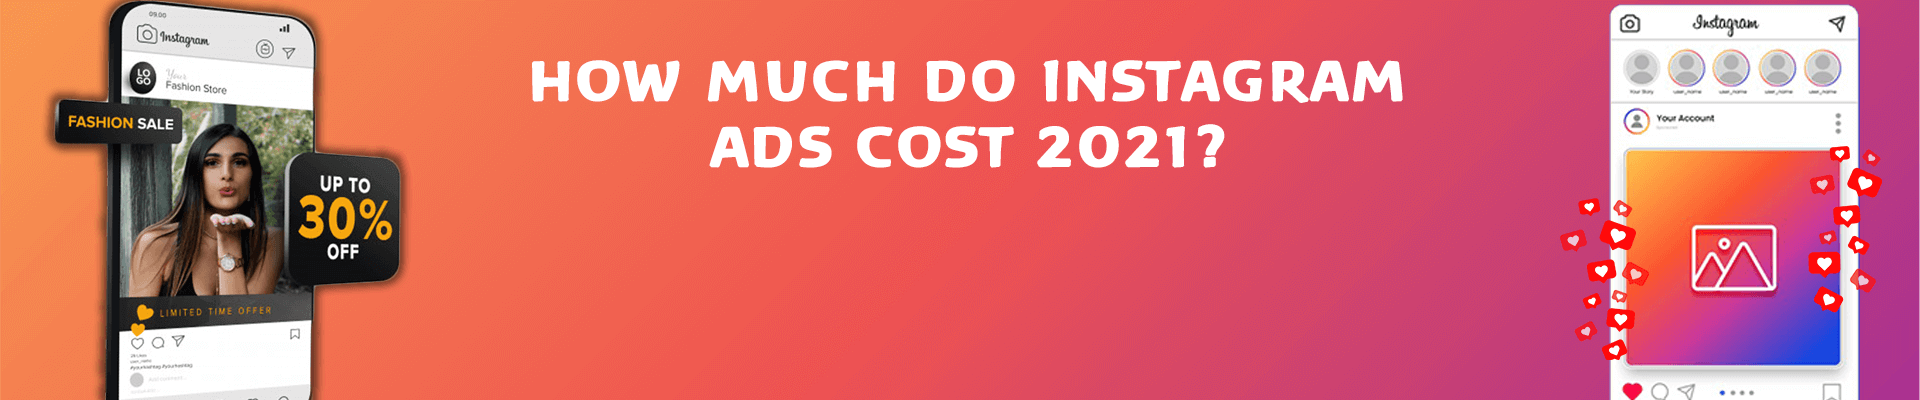 How Much Do Instagram Ads Cost in 2021?